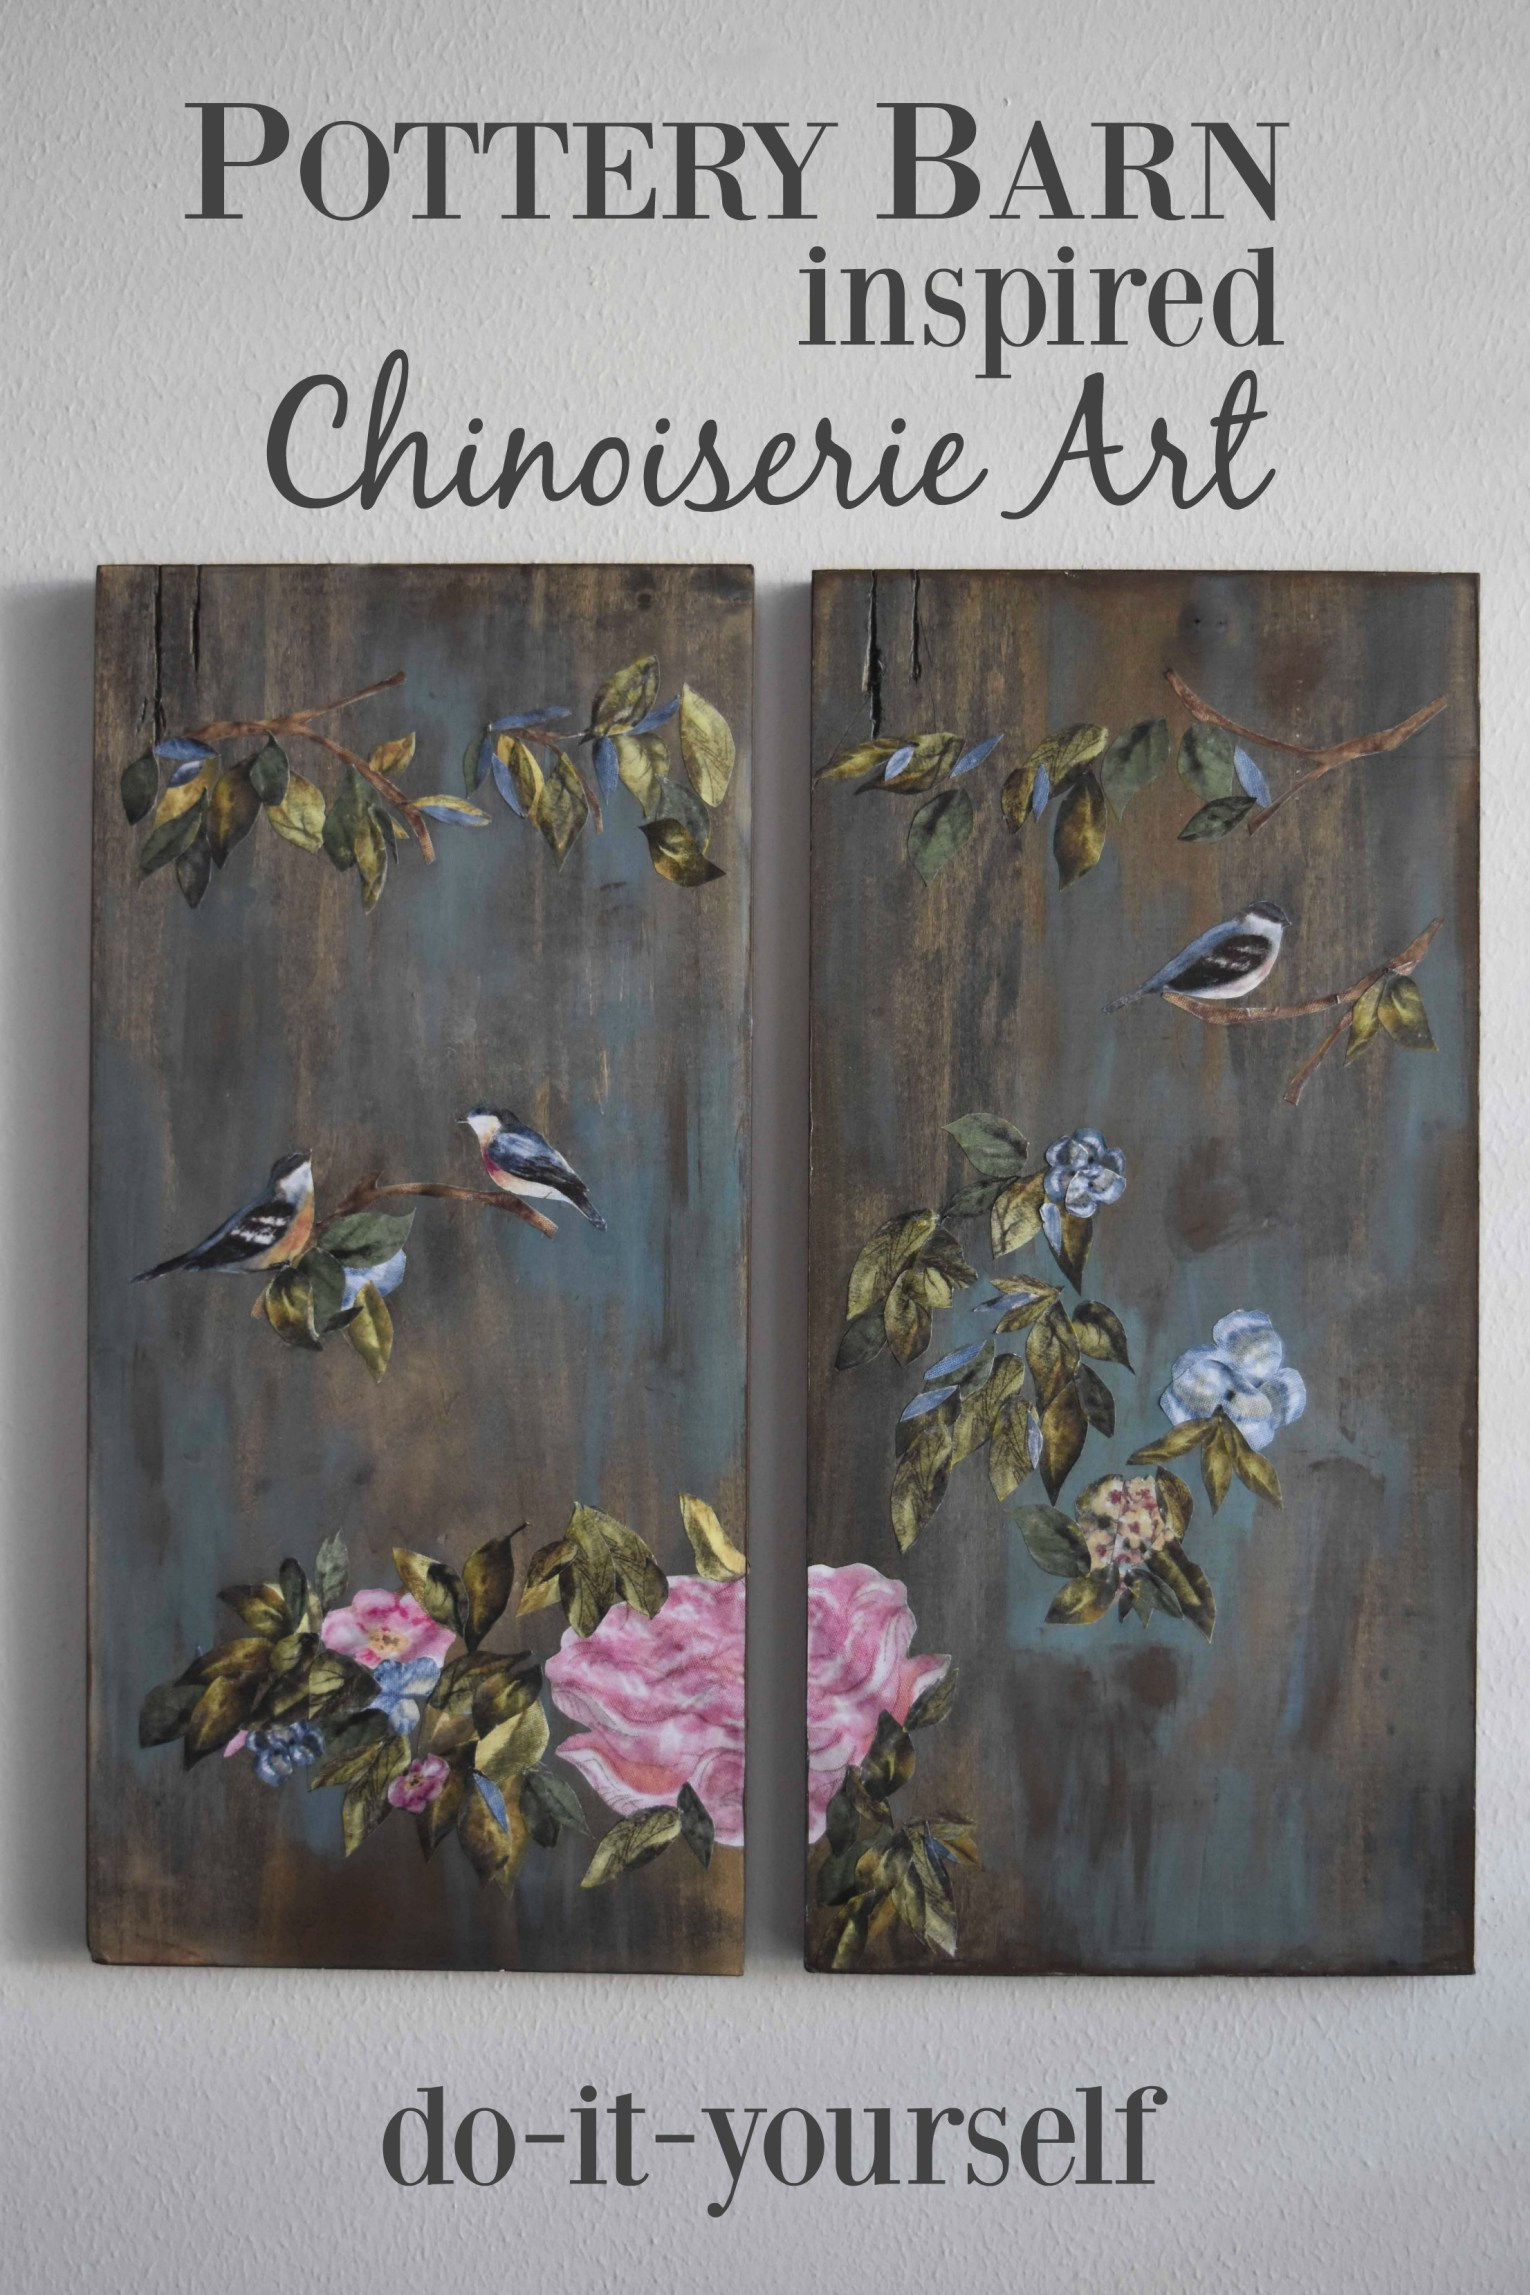 Diy Pottery Barn Inspired Chinoiserie Art Panels A Fun Collage Project Once Again My Dear Irene